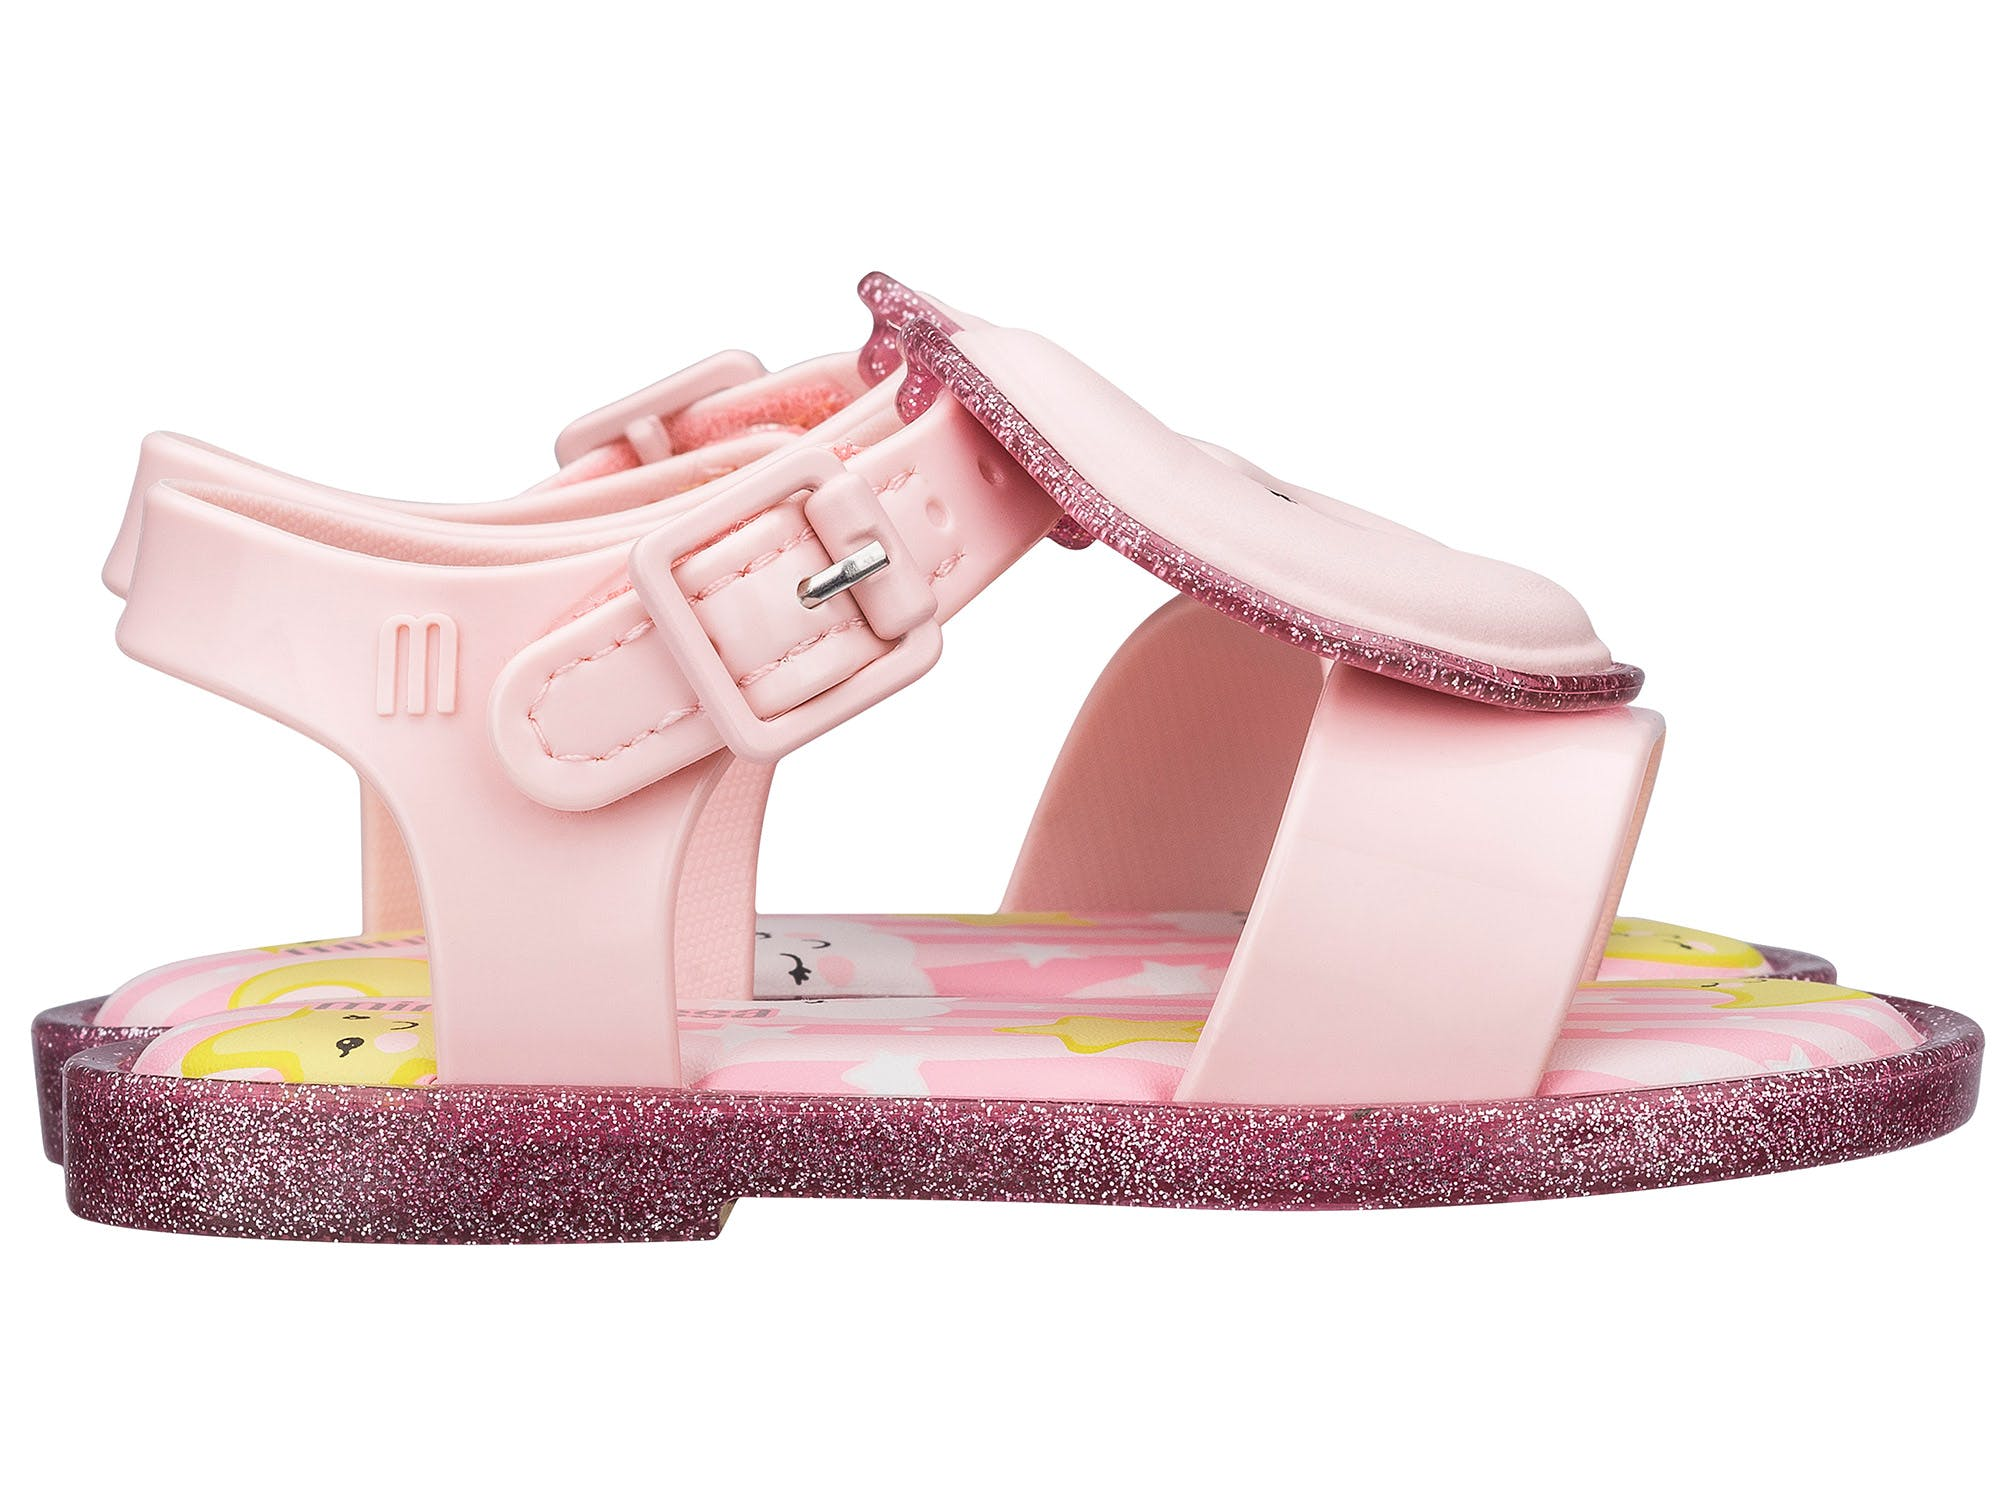 Mini Melissa Mar Sandal Sweet Dreams Rosa Rosa Glitter